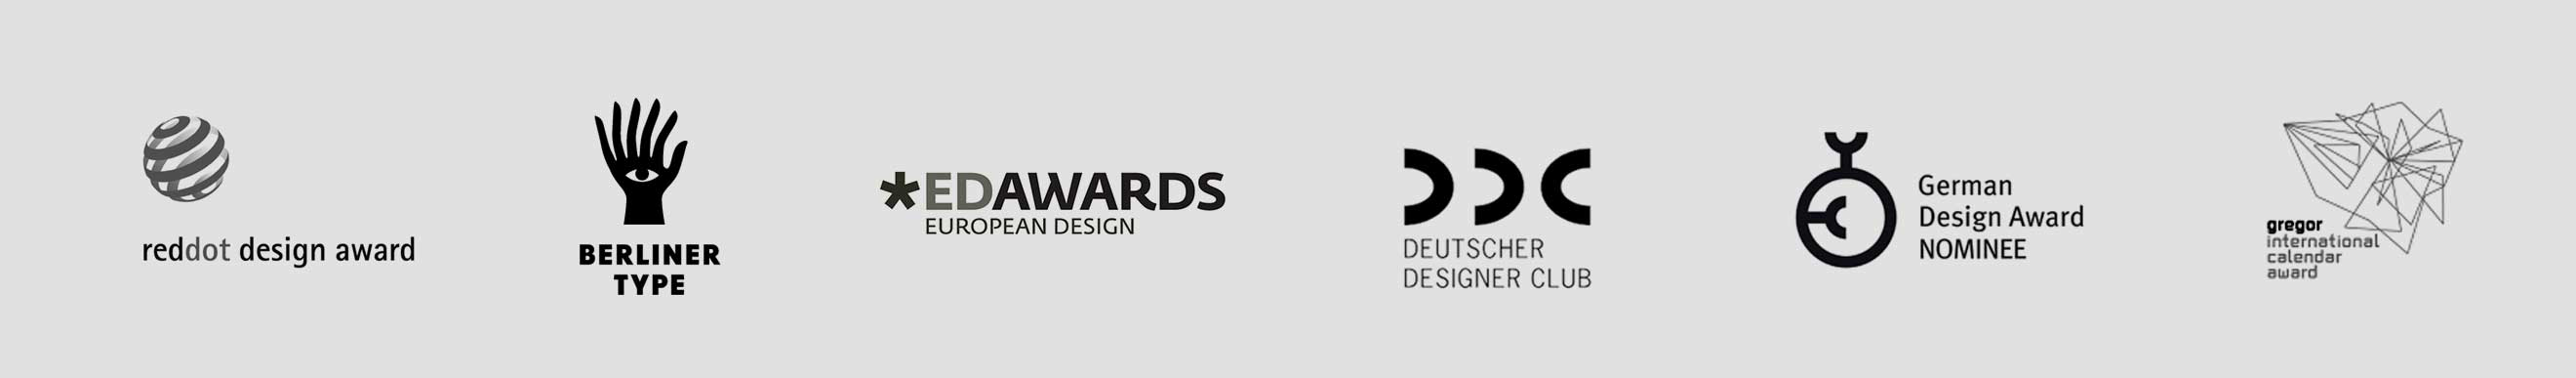 Zufallskalender Awards, reddot design award, Berliner Type, European Design Awards, DDC Award, German Design Award Nominee, gregor international calendar award